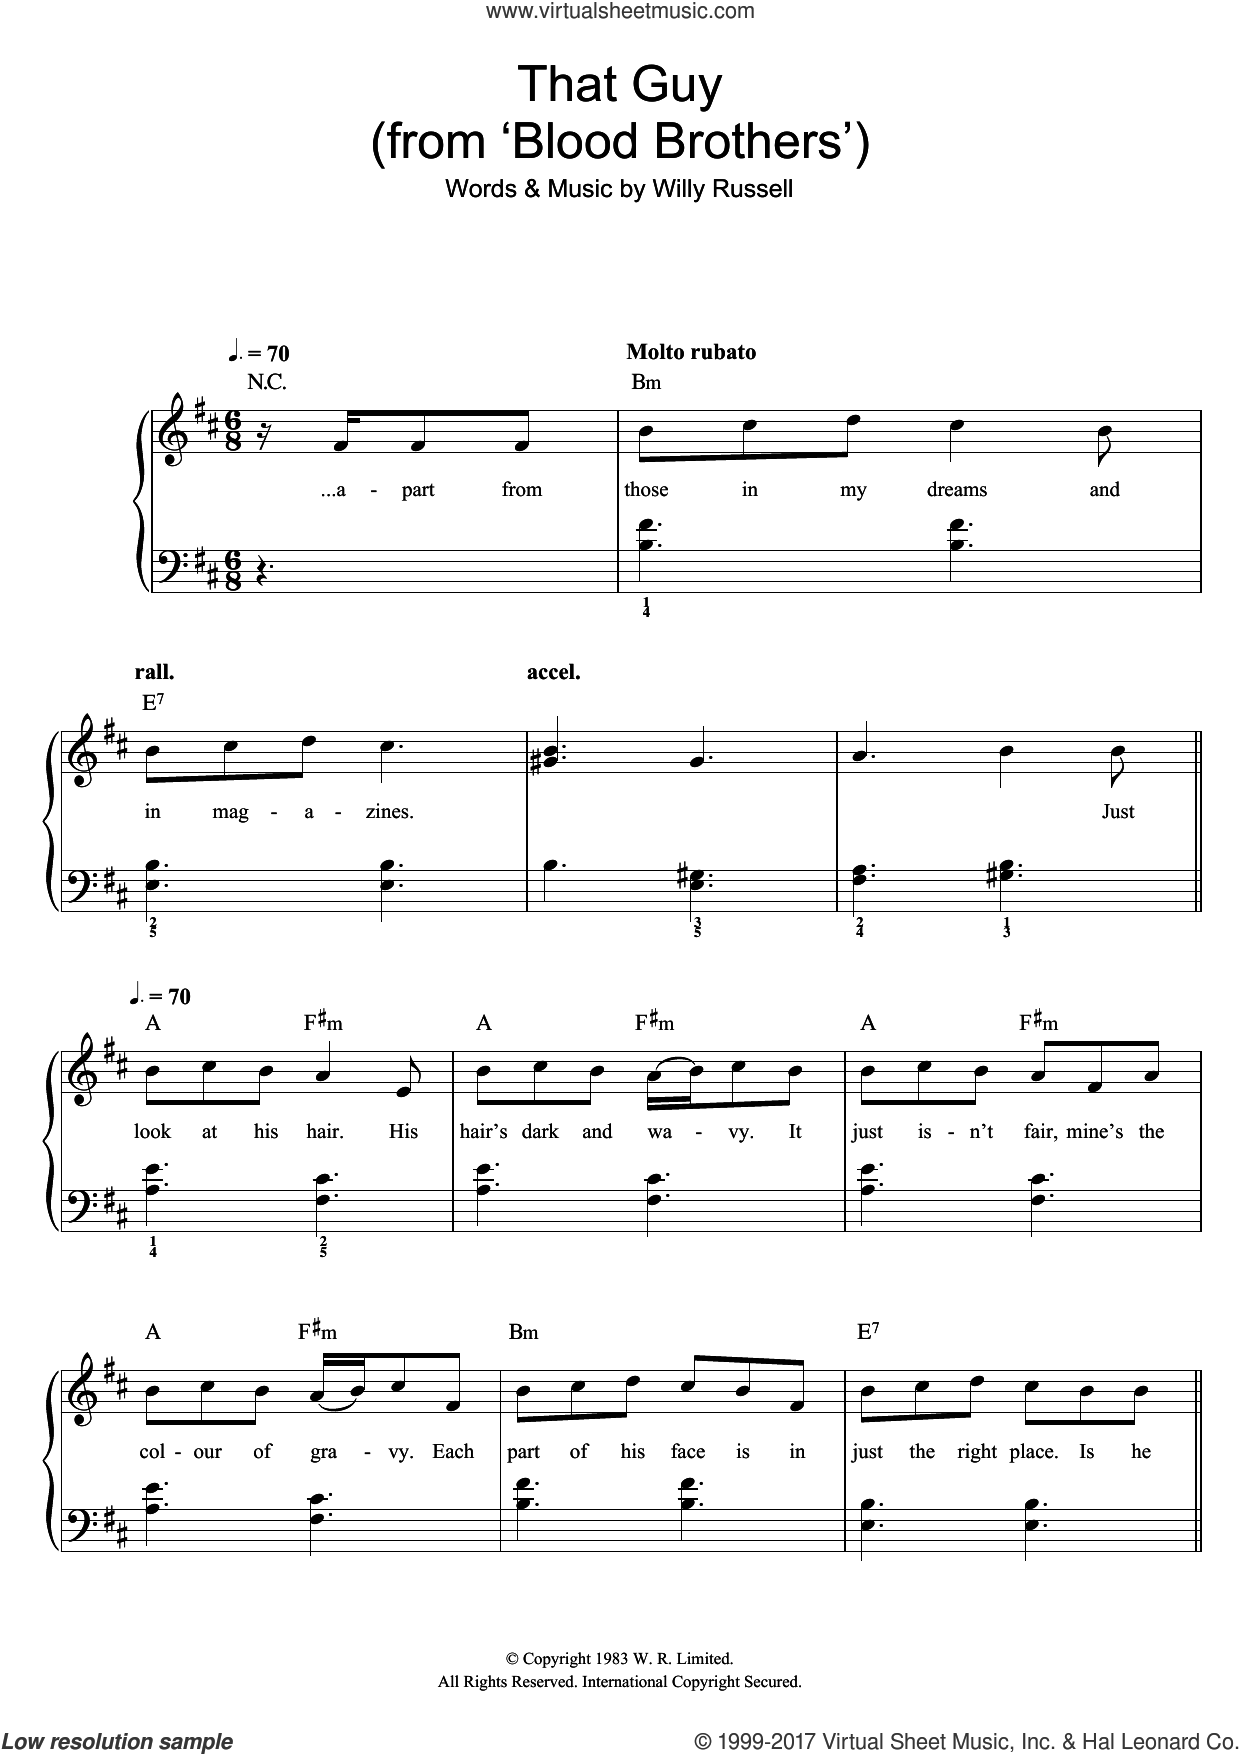 That Guy (from Blood Brothers) sheet music for piano solo by Willy Russell, easy skill level